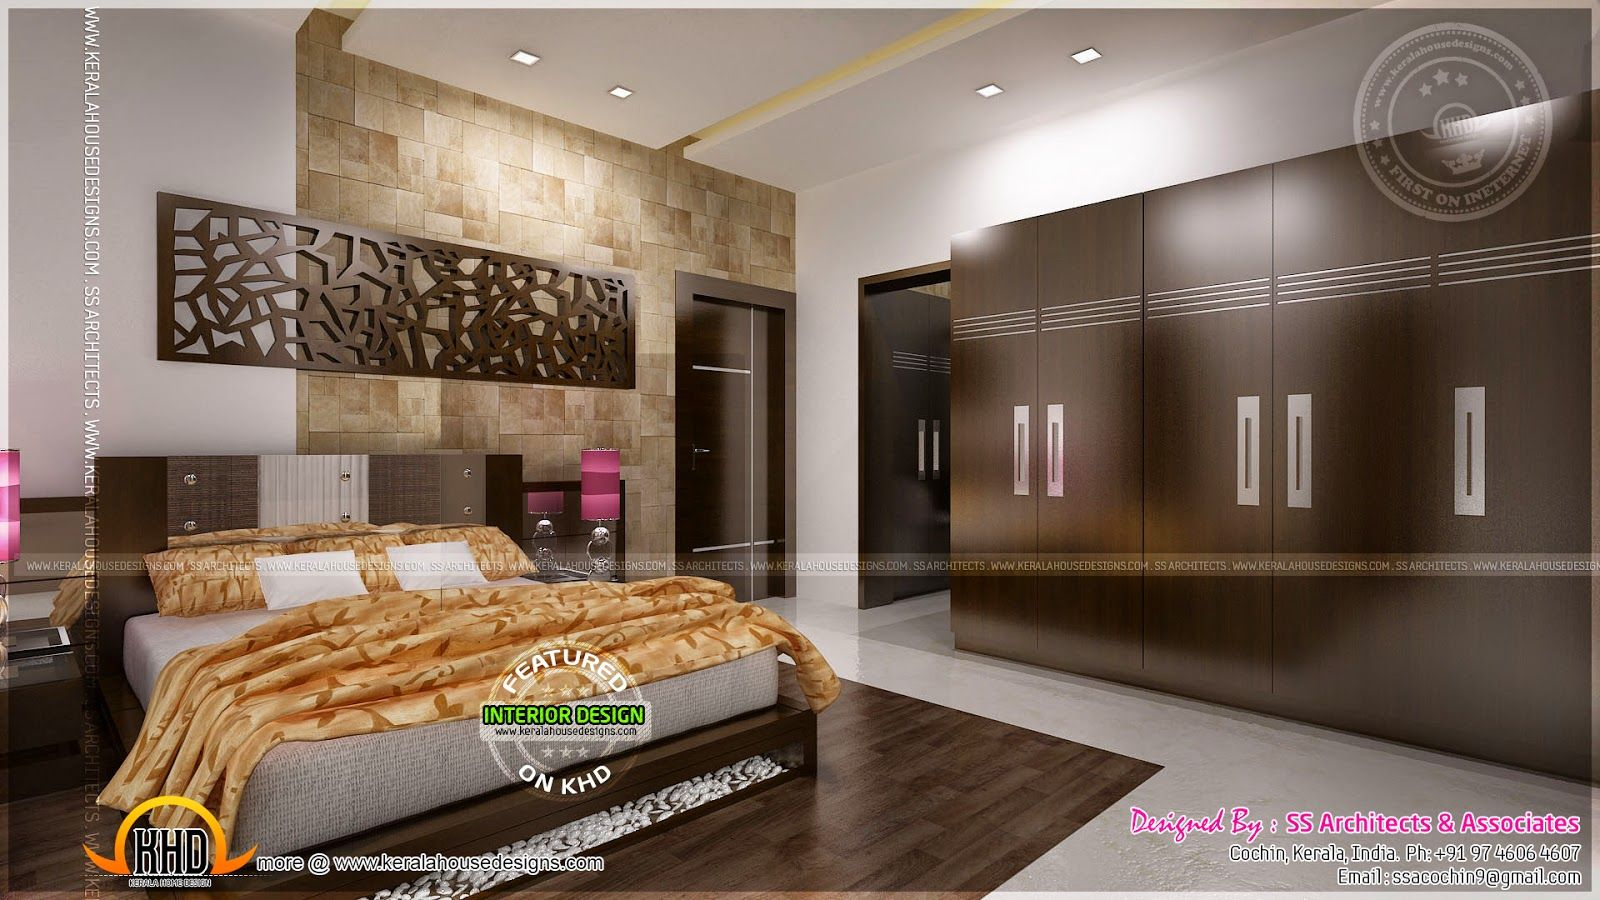 brown and best design bedroom.  Bedroom Interior Design Full Size Designs Master Decorating Ideas Home Pleasant Then Simple Best Free Idea Inspiration indian bedroom interiors Google Search Pinterest